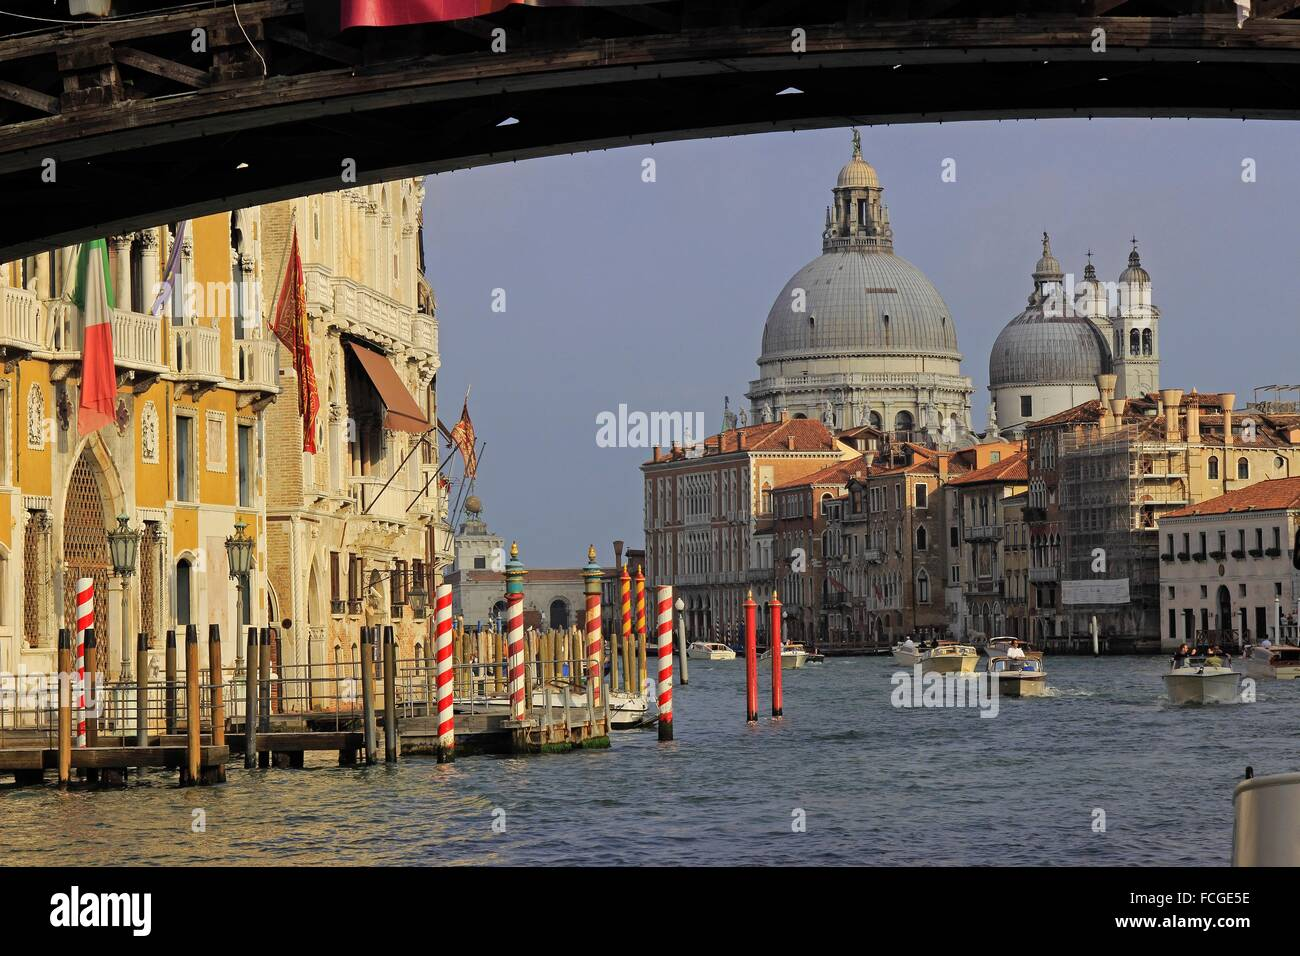 Venice Italy Grand Canal architecture from Academia Bridge. - Stock Image